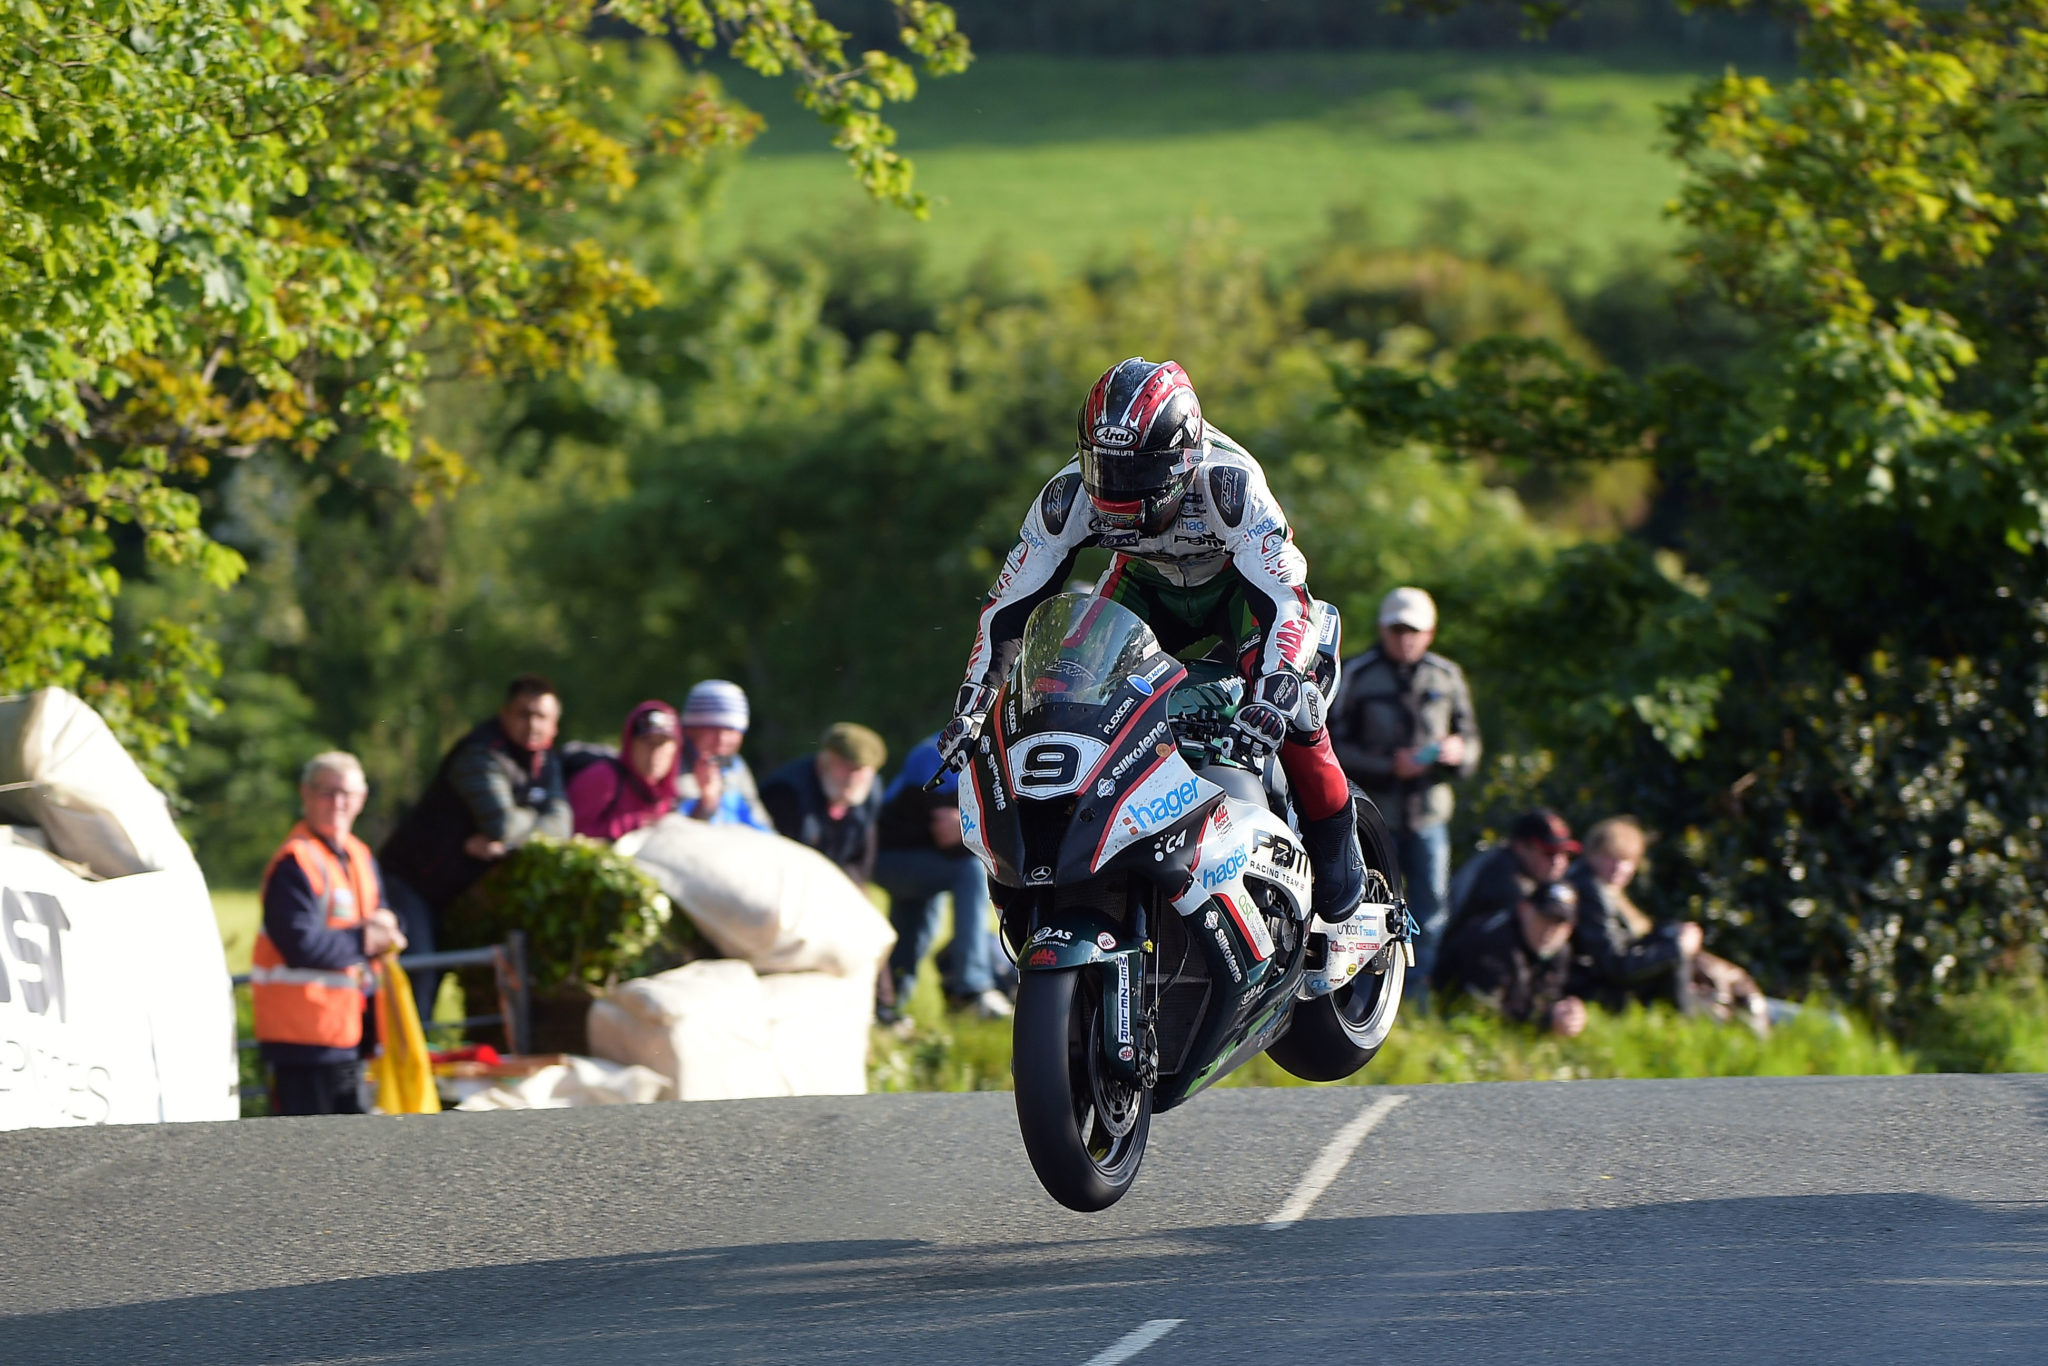 Hutchy doing what he does best at the TT, image credit Jon Jessop Photography